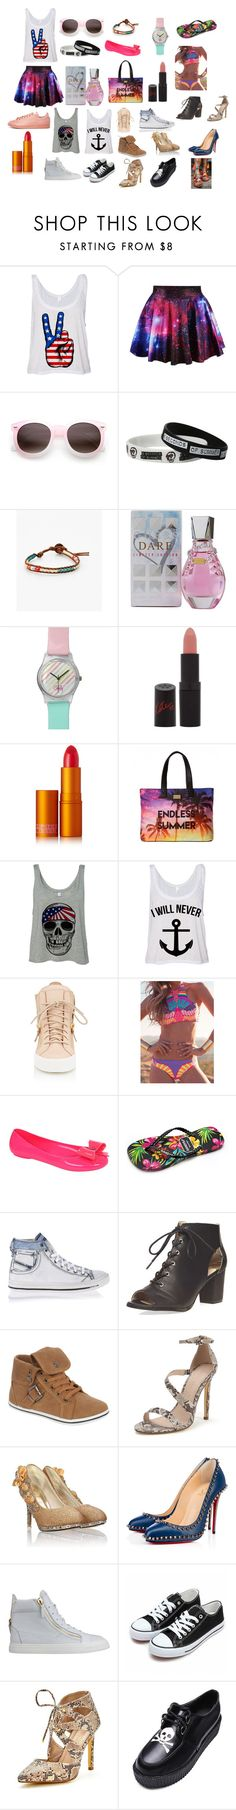 Lucy Luco -Summer style girl by exkniha on Polyvore featuring Giuseppe Zanotti, Christian Louboutin, Diesel, Dorothy Perkins, Gandys, Pilot, Elizabeth Koh, Lipstick Queen, Rimmel and GUESS